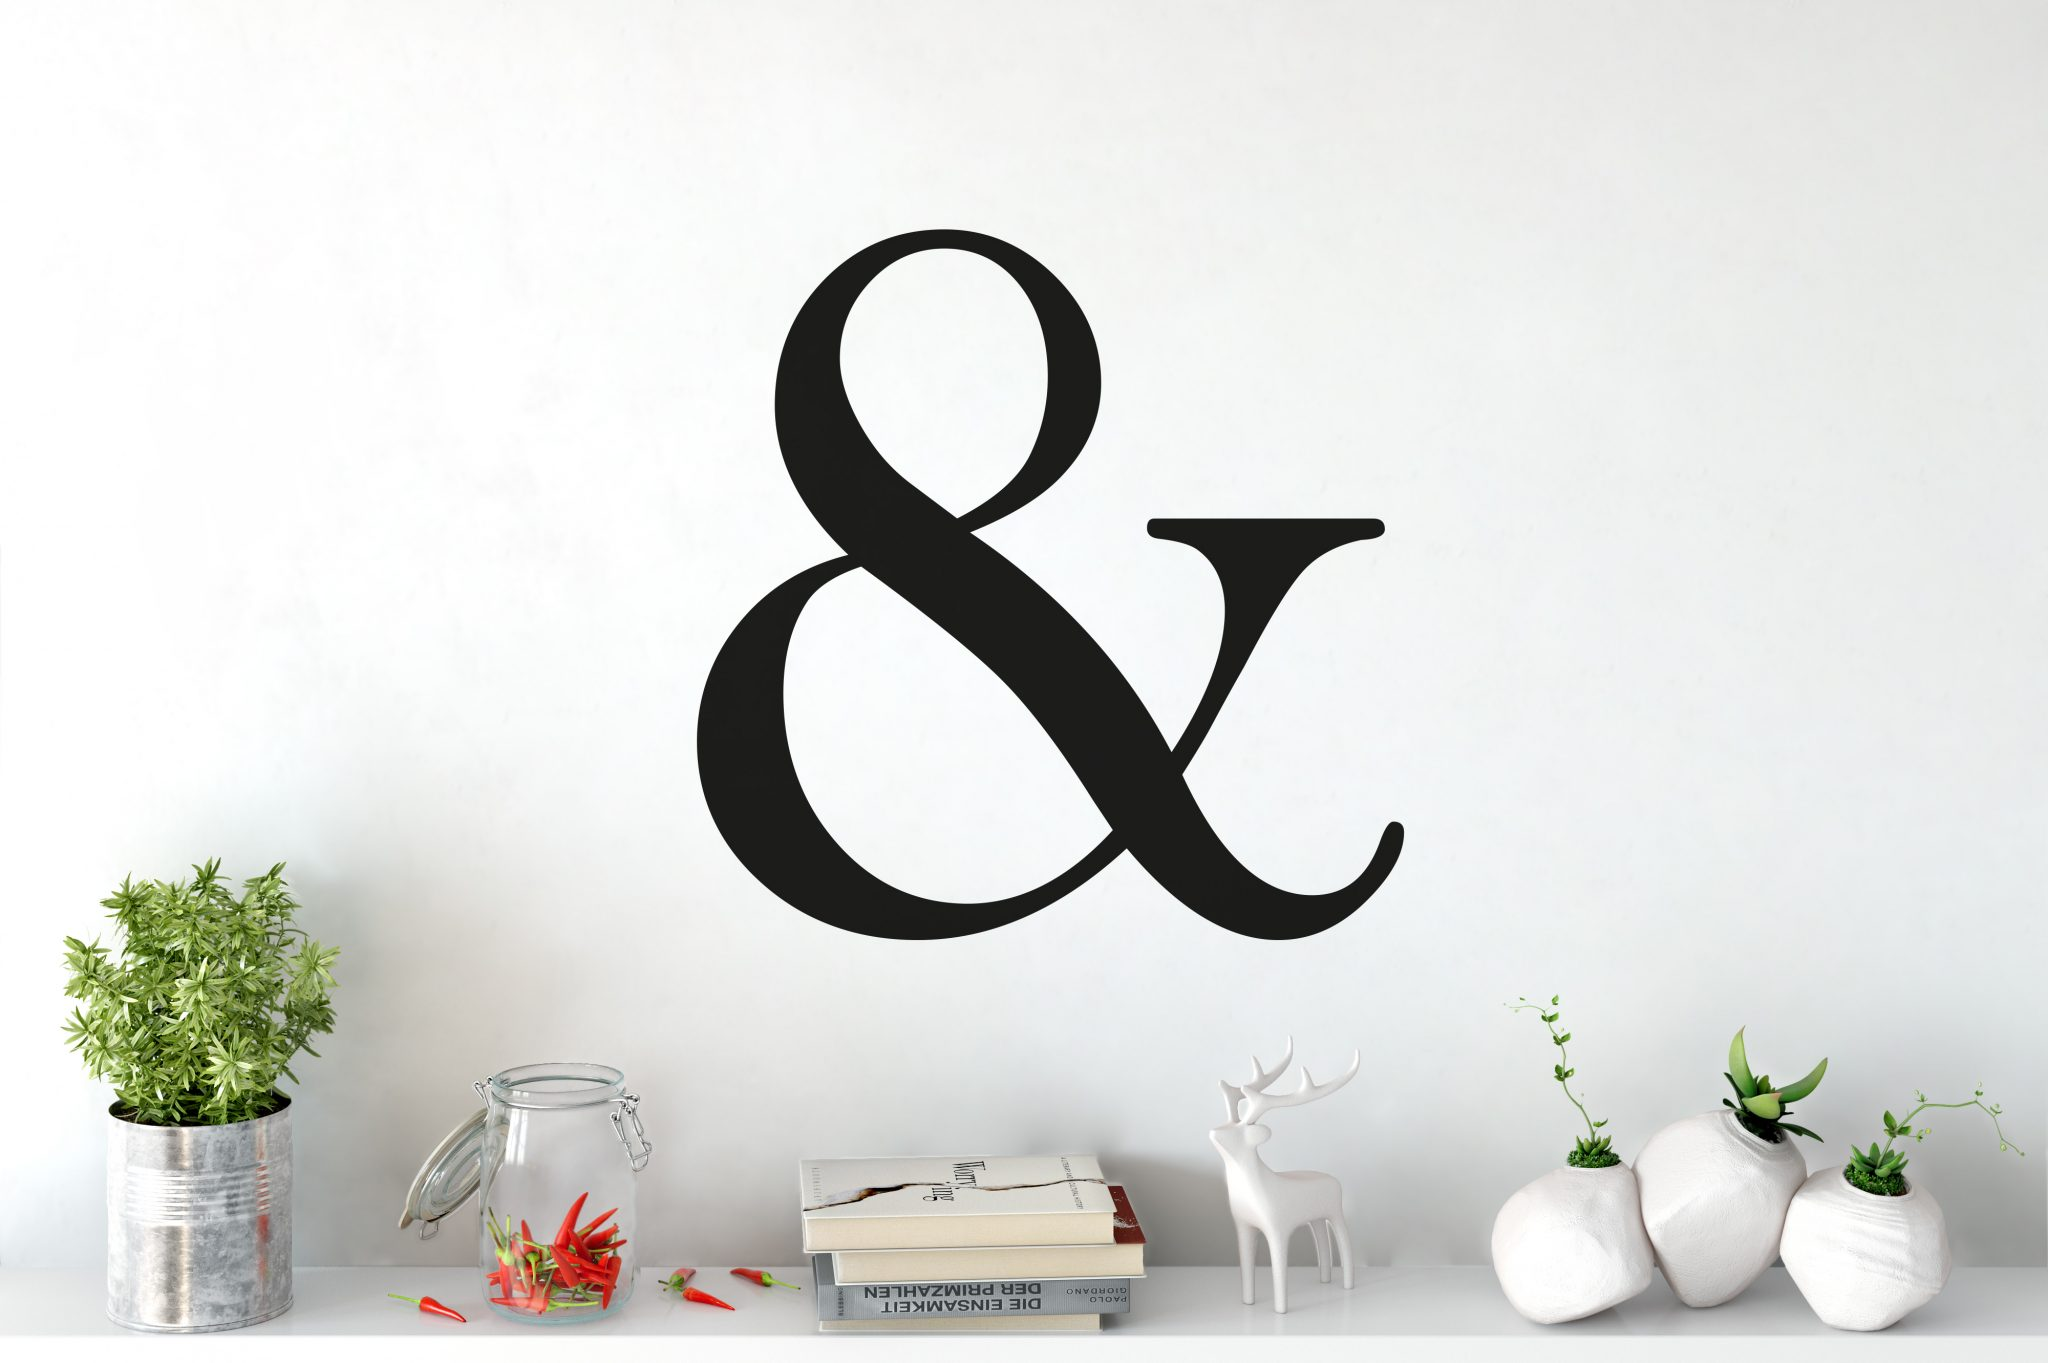 Ampersand Letter Wall Sticker | Letter Wall Stickers | Modern Wall Sticker